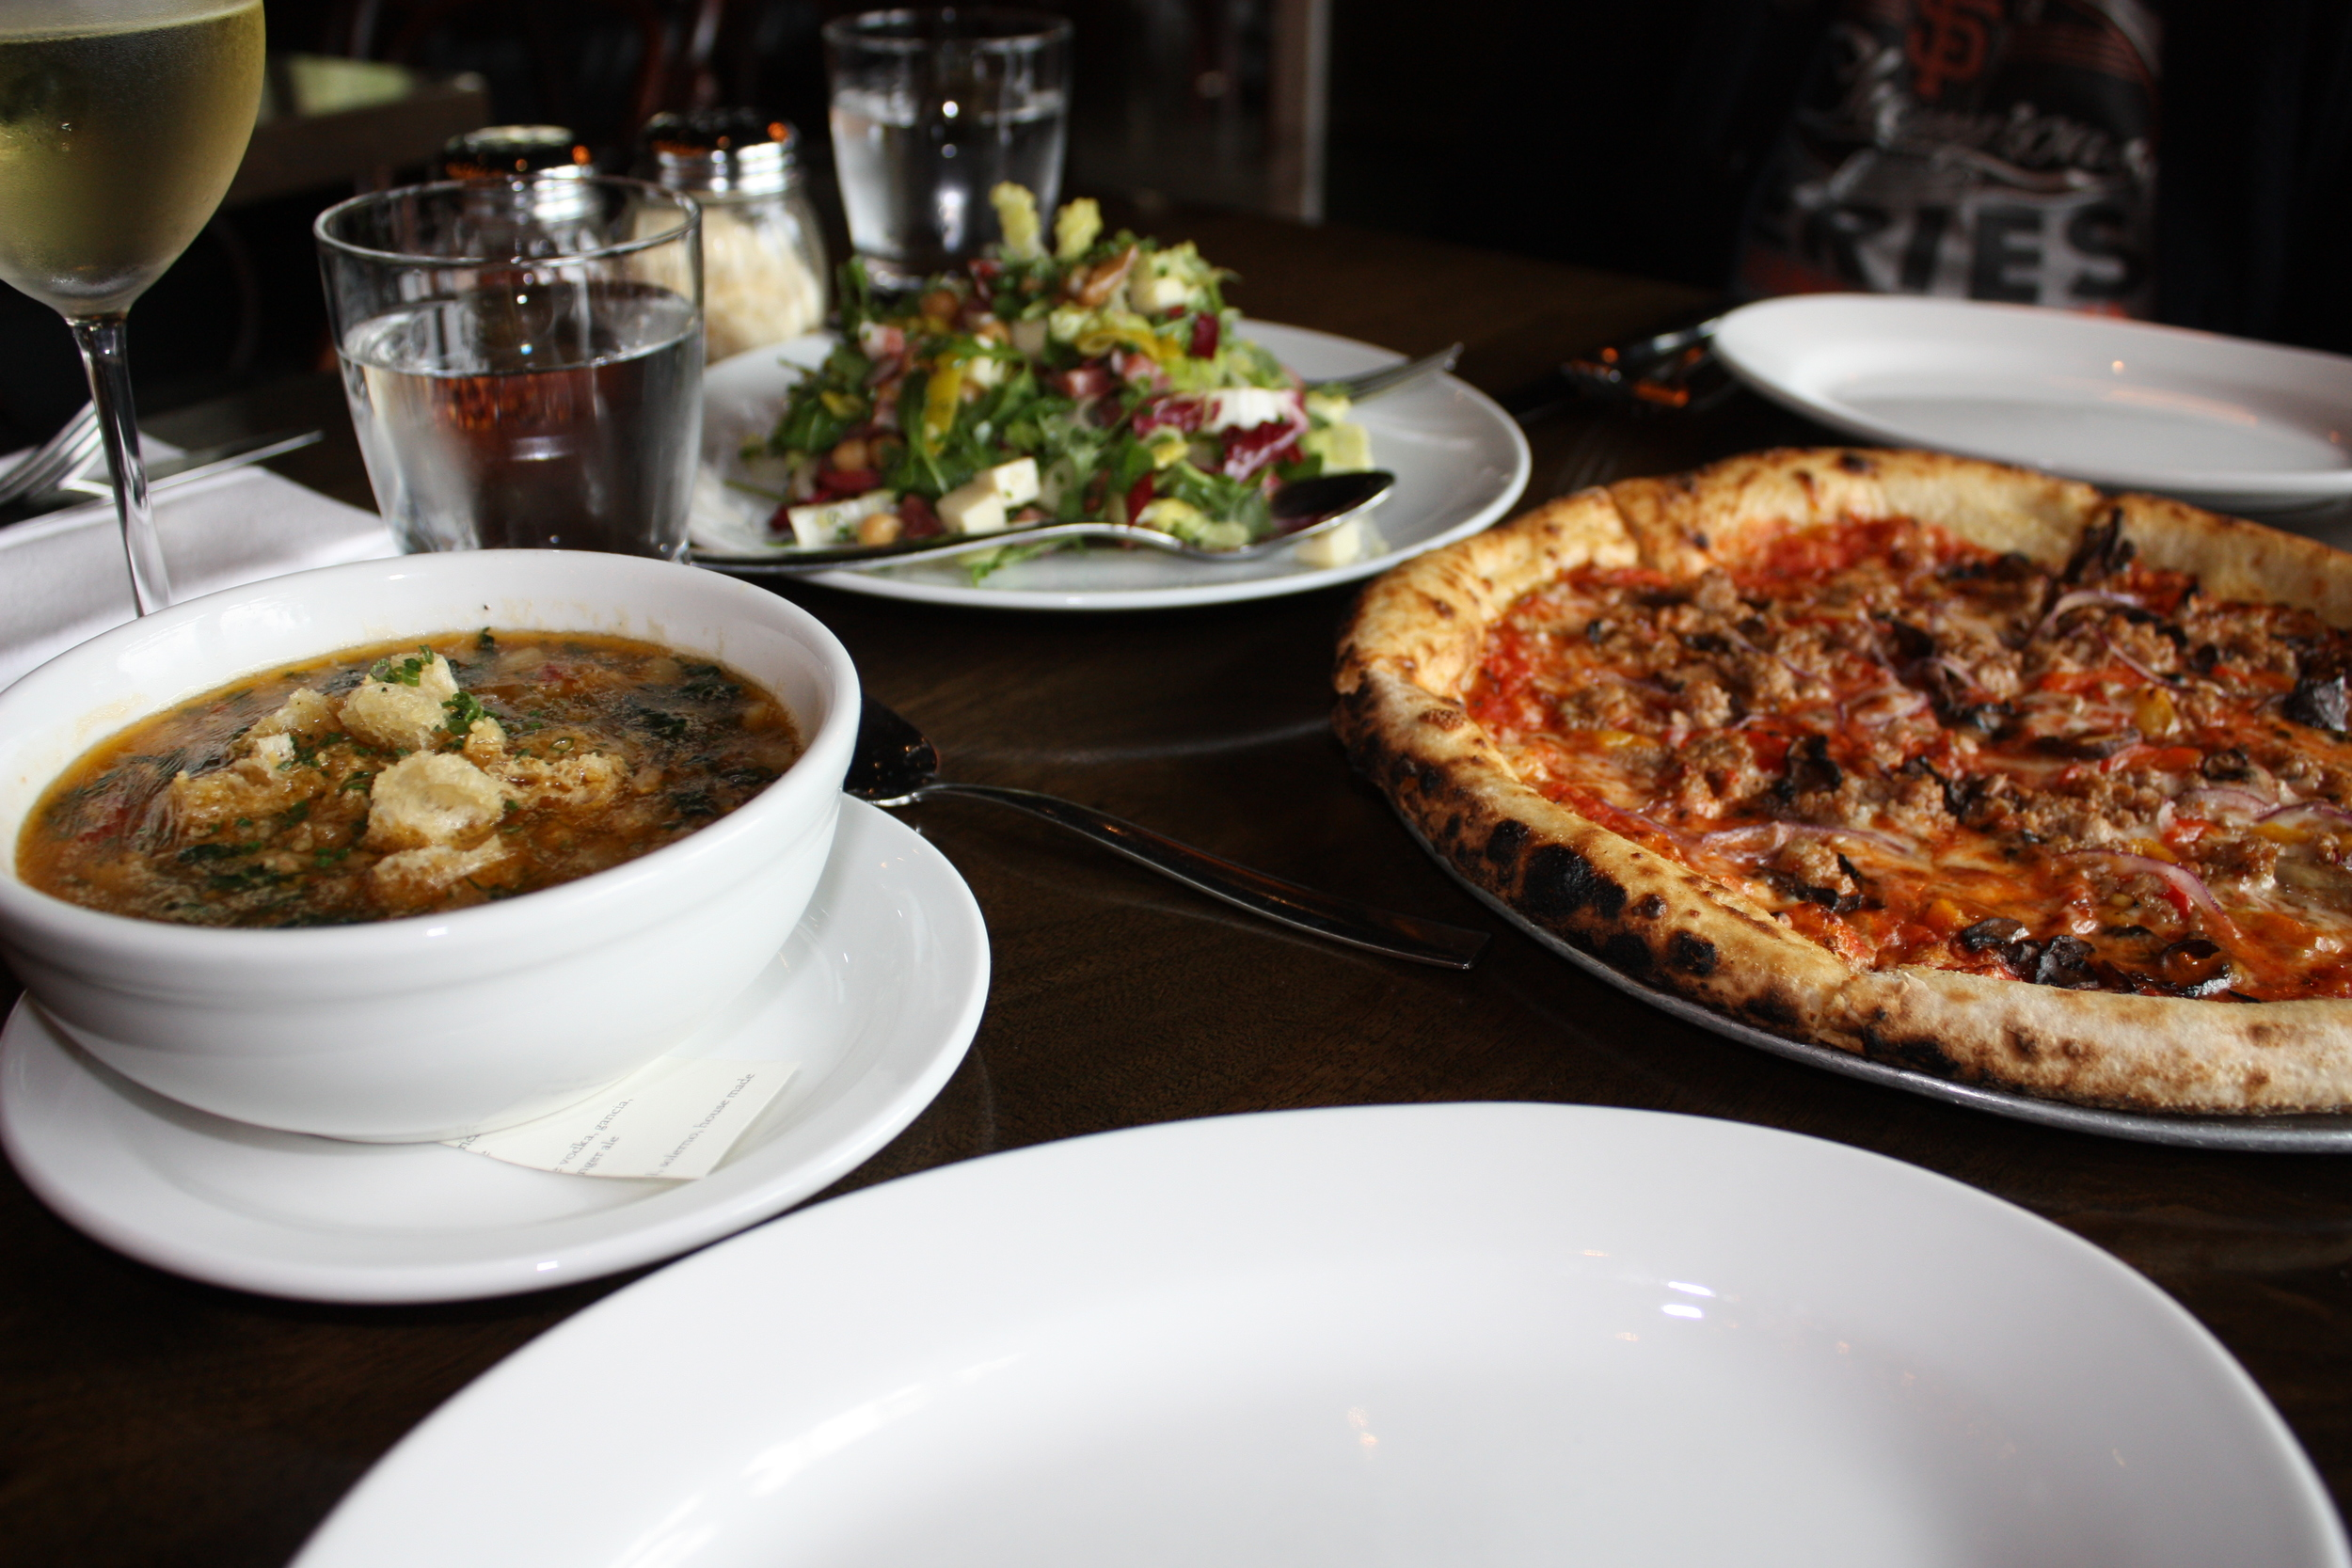 Reddwood restaurant located in Yountville, definitely some of the best wood fired flatbreads around.